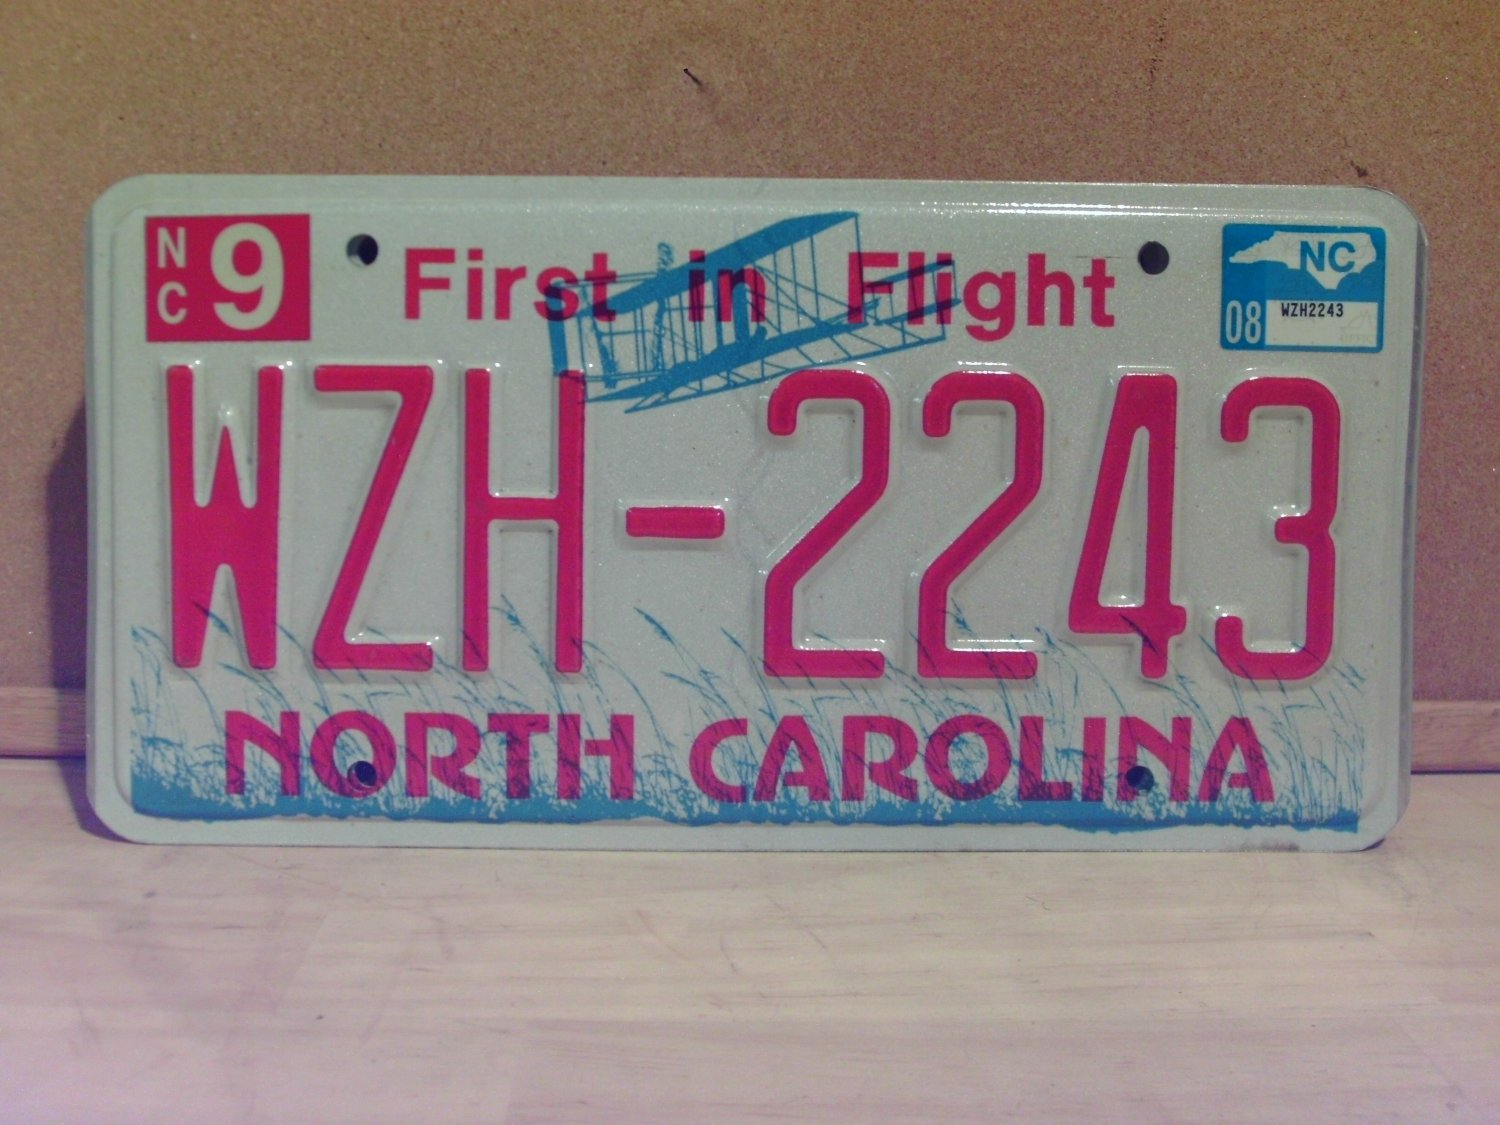 2008 North Carolina NC Red Letter License Plate Tag WZH-2243 EX-N